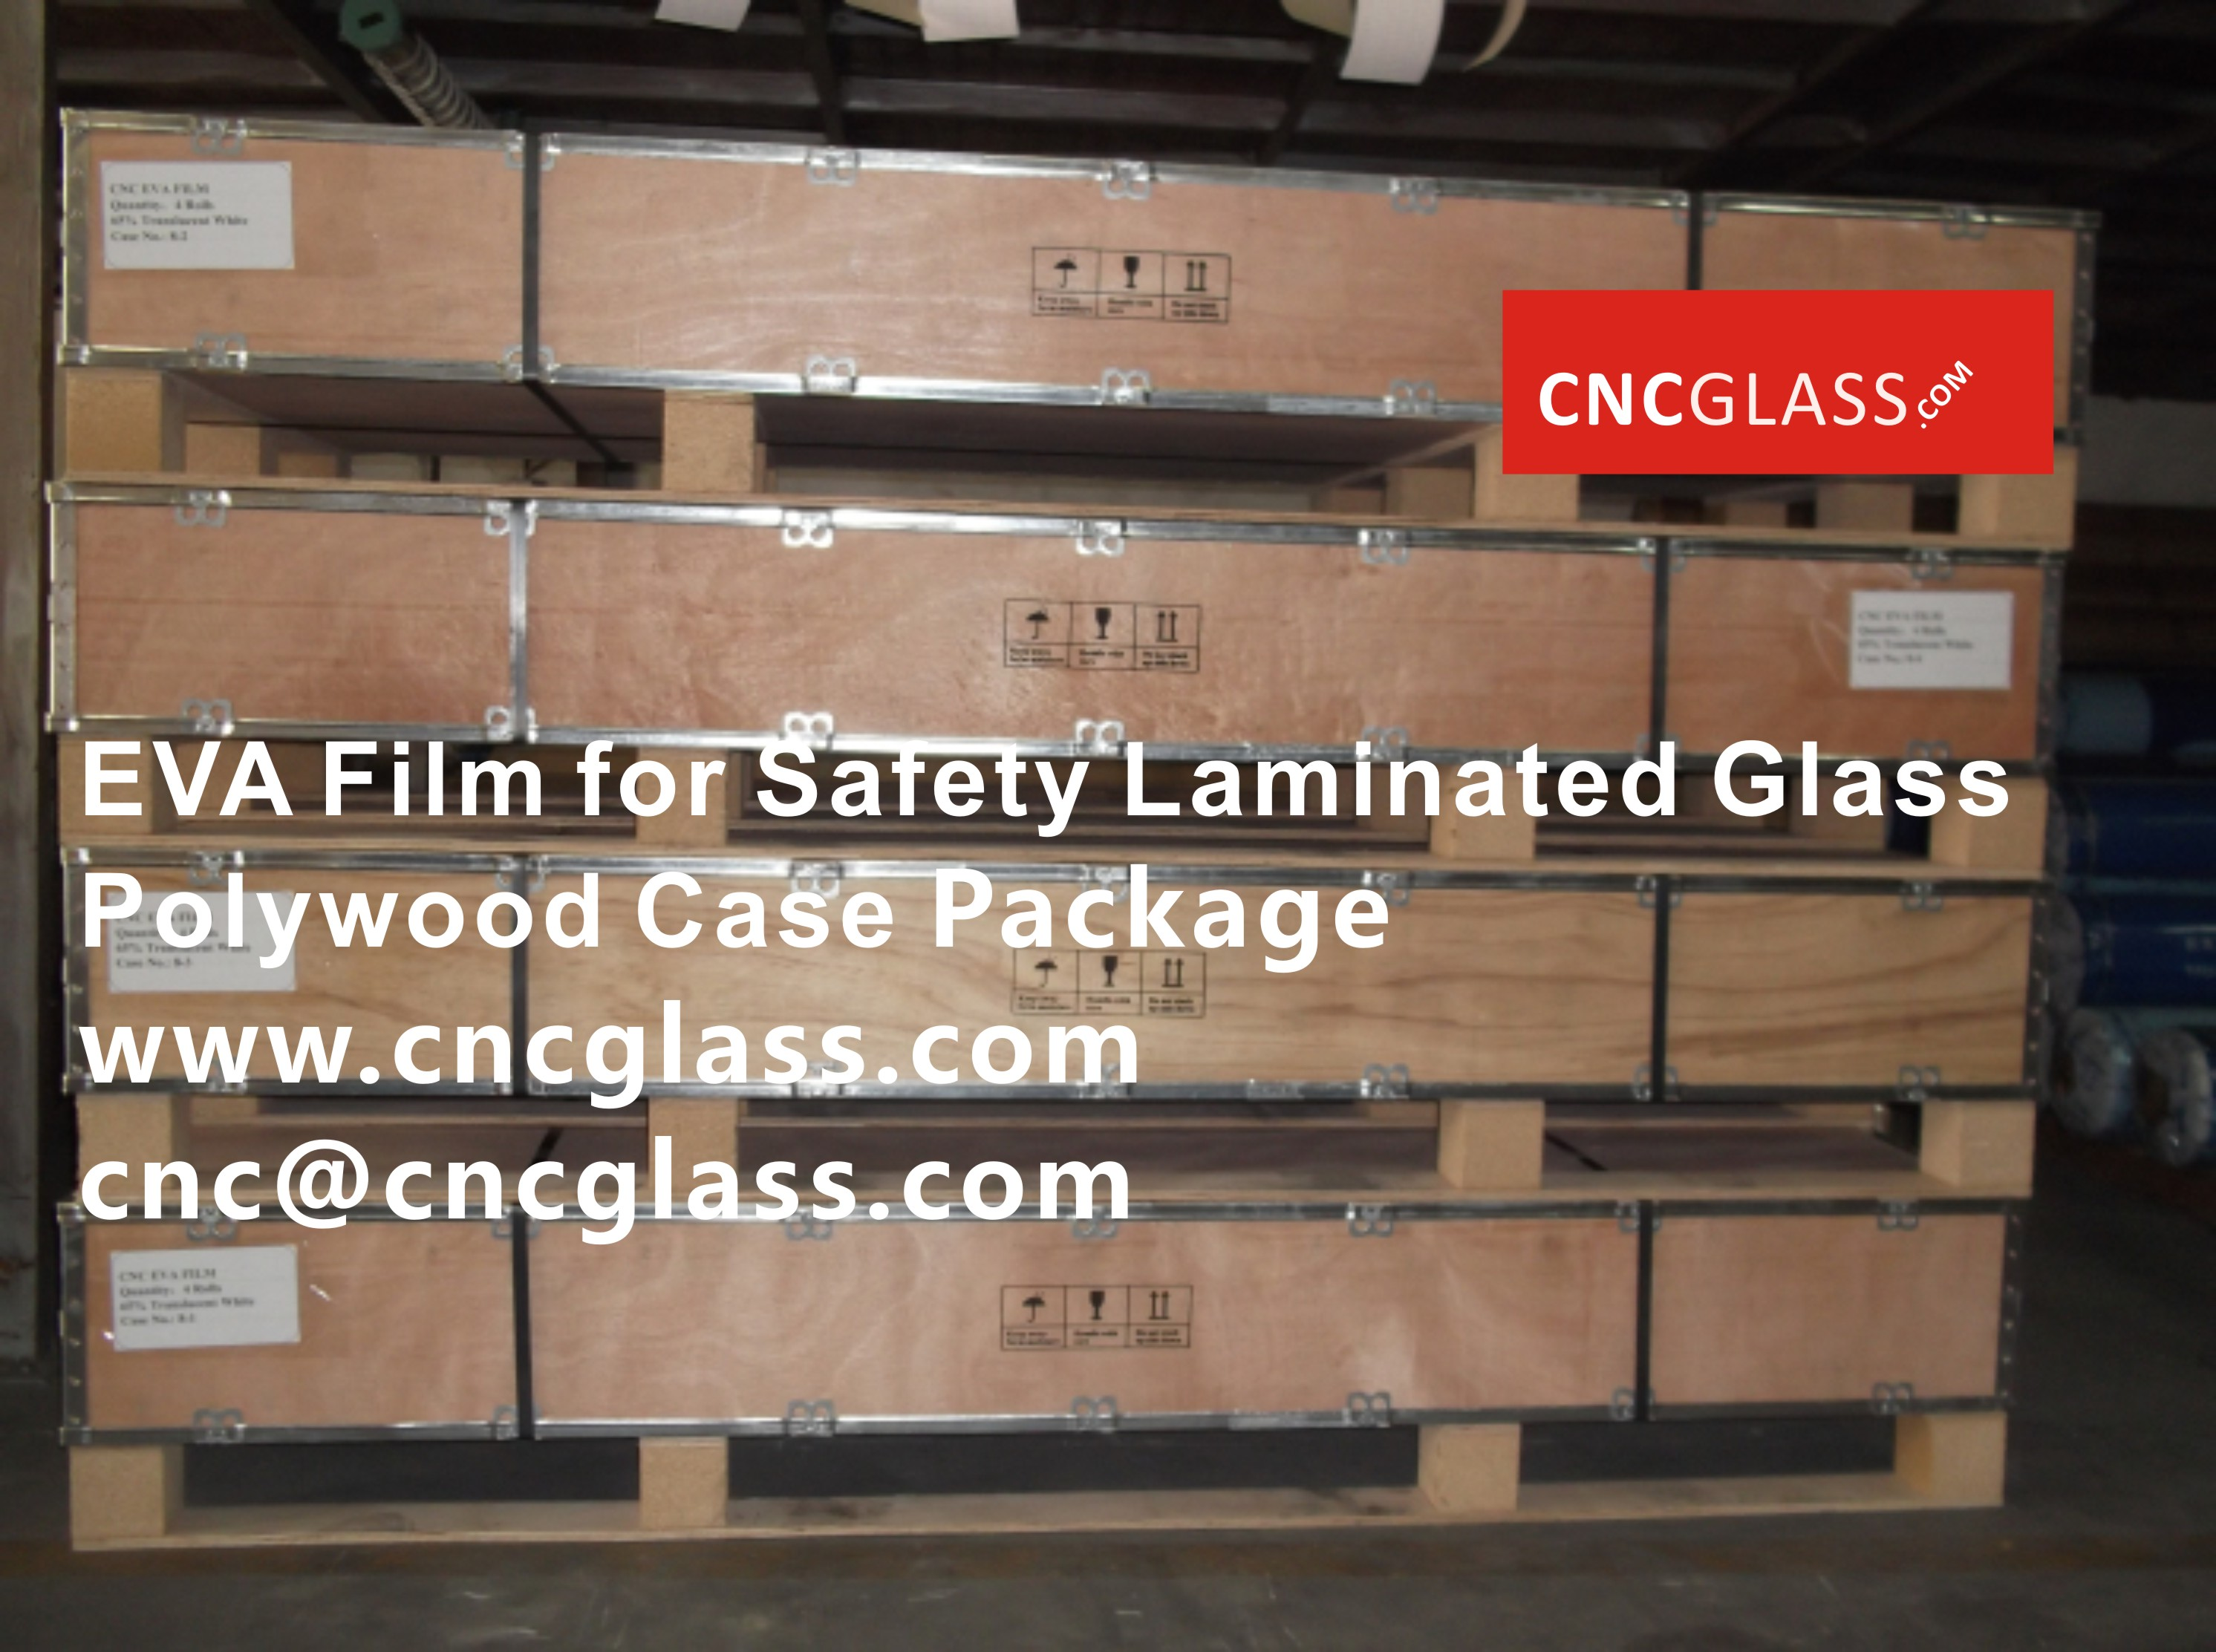 091602EVA Film for Safety Glass Package